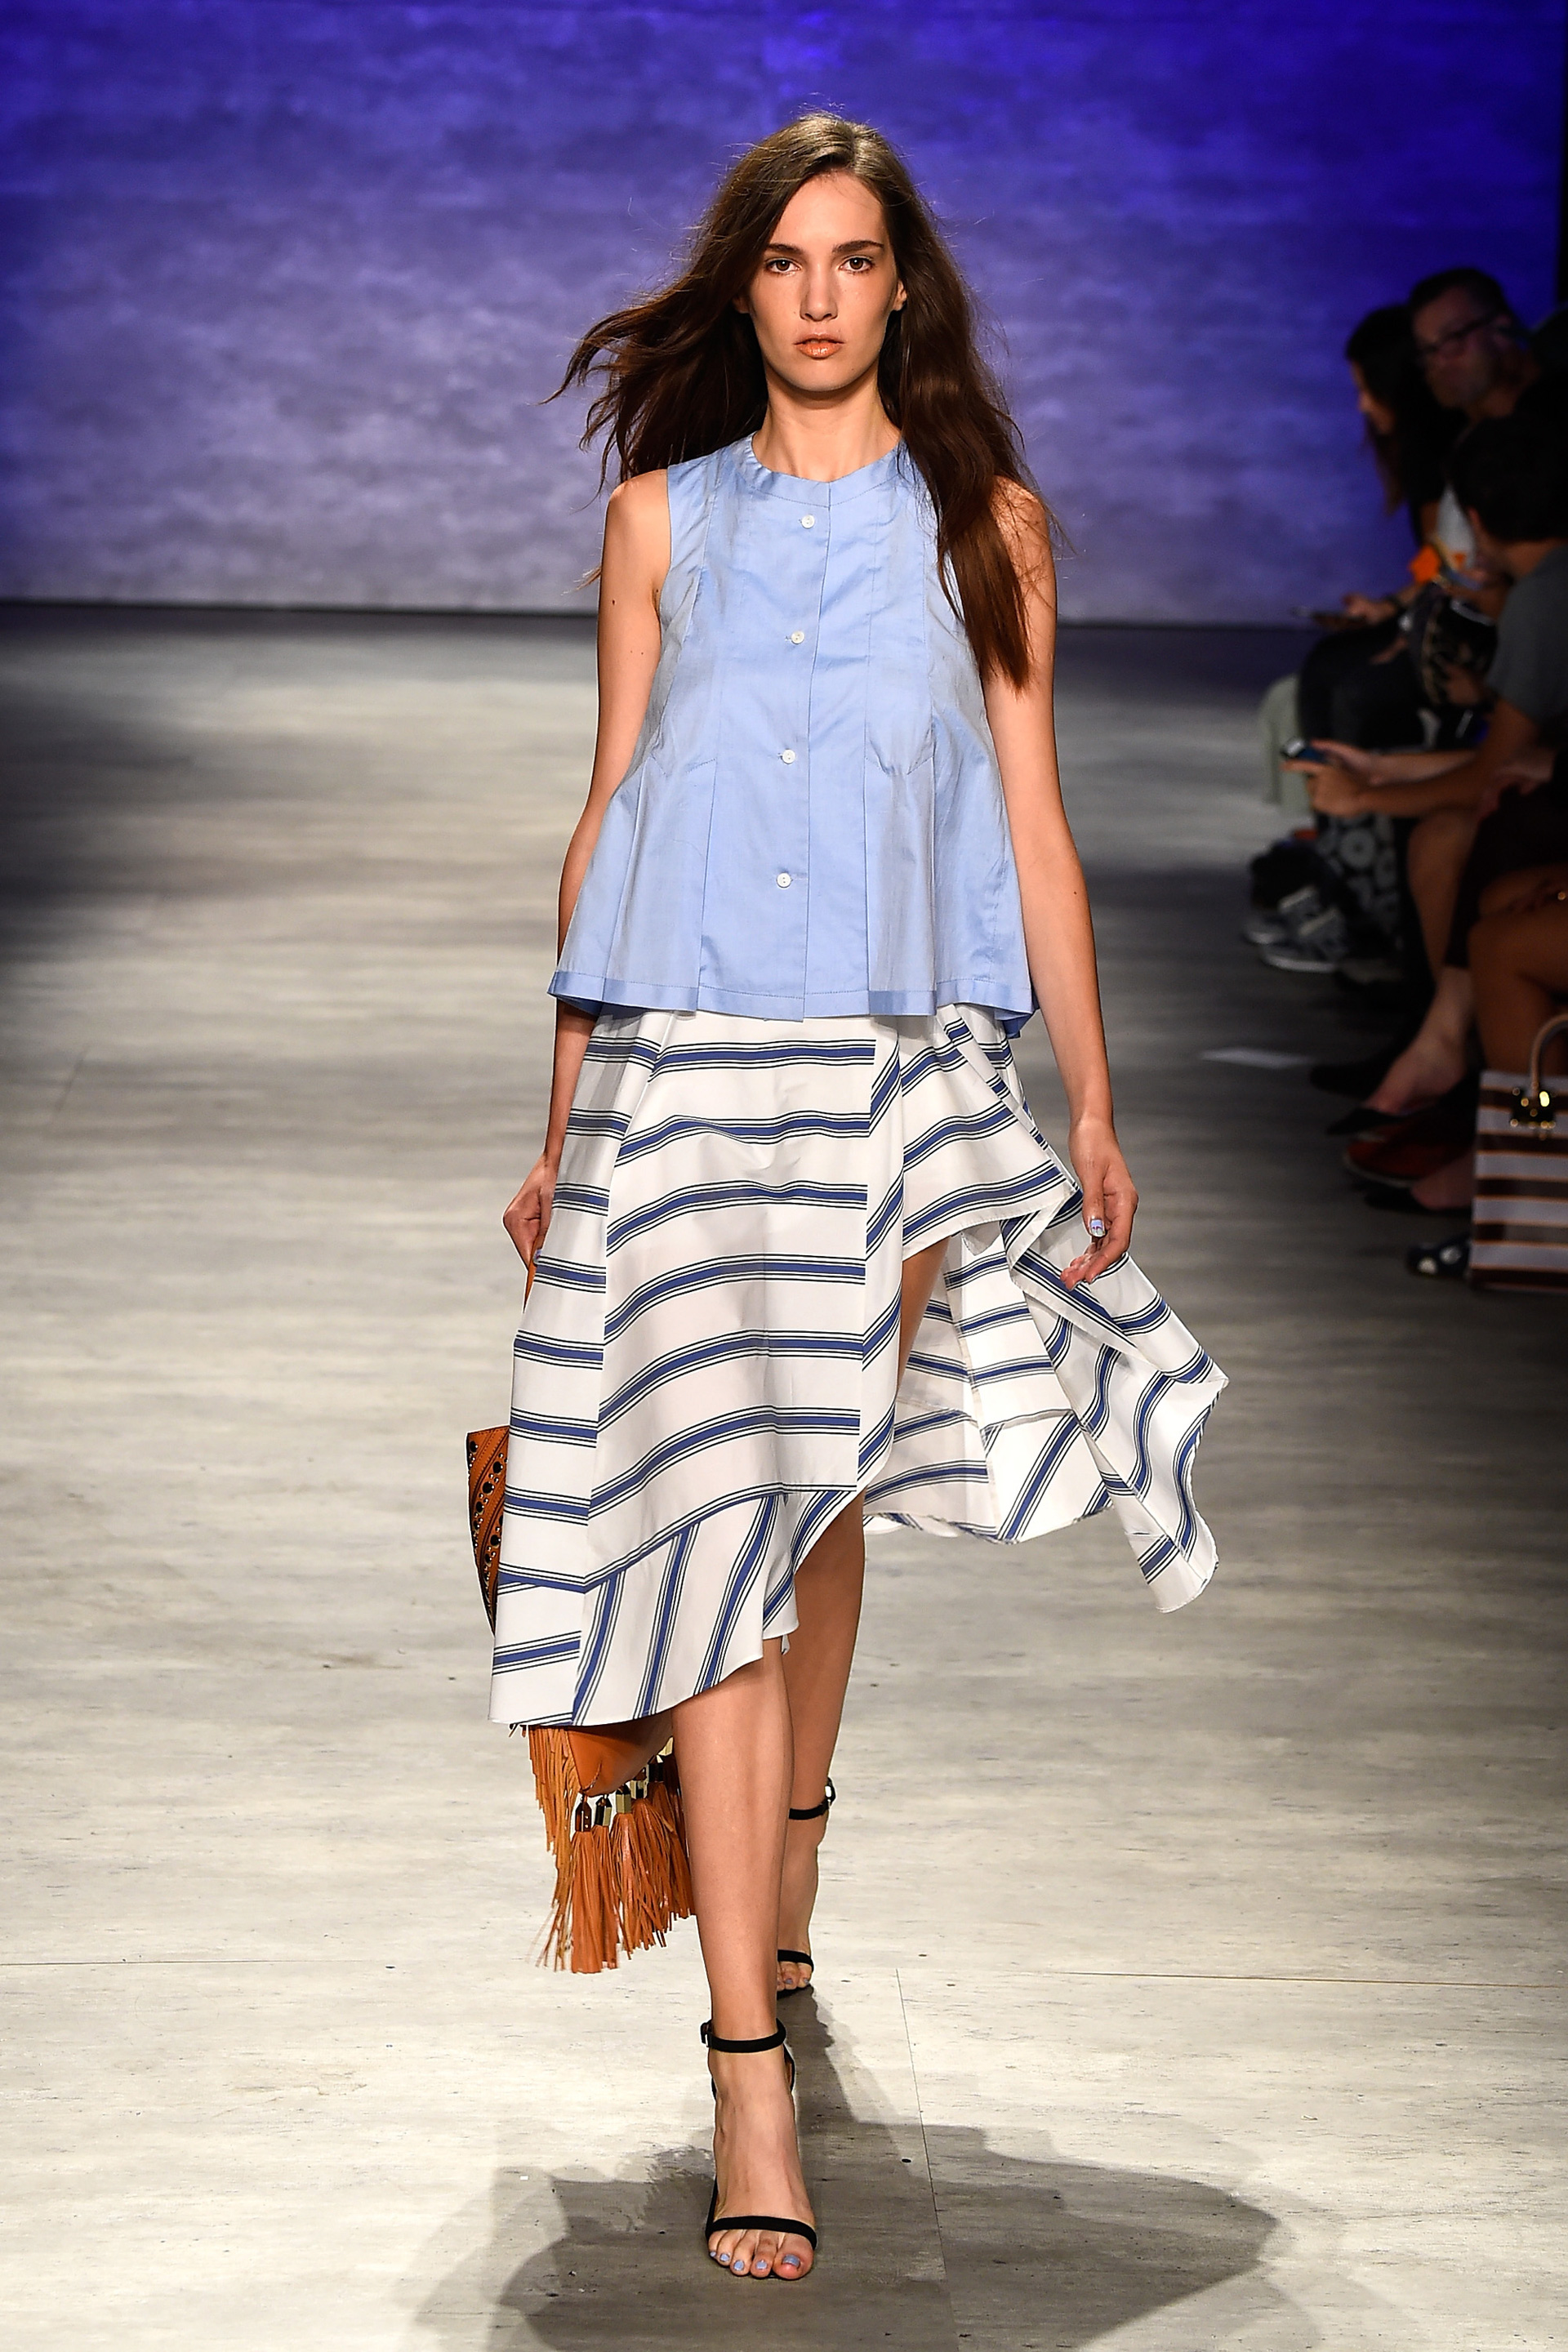 Must-see outfits from Rebecca Minkoff's spring collection 10